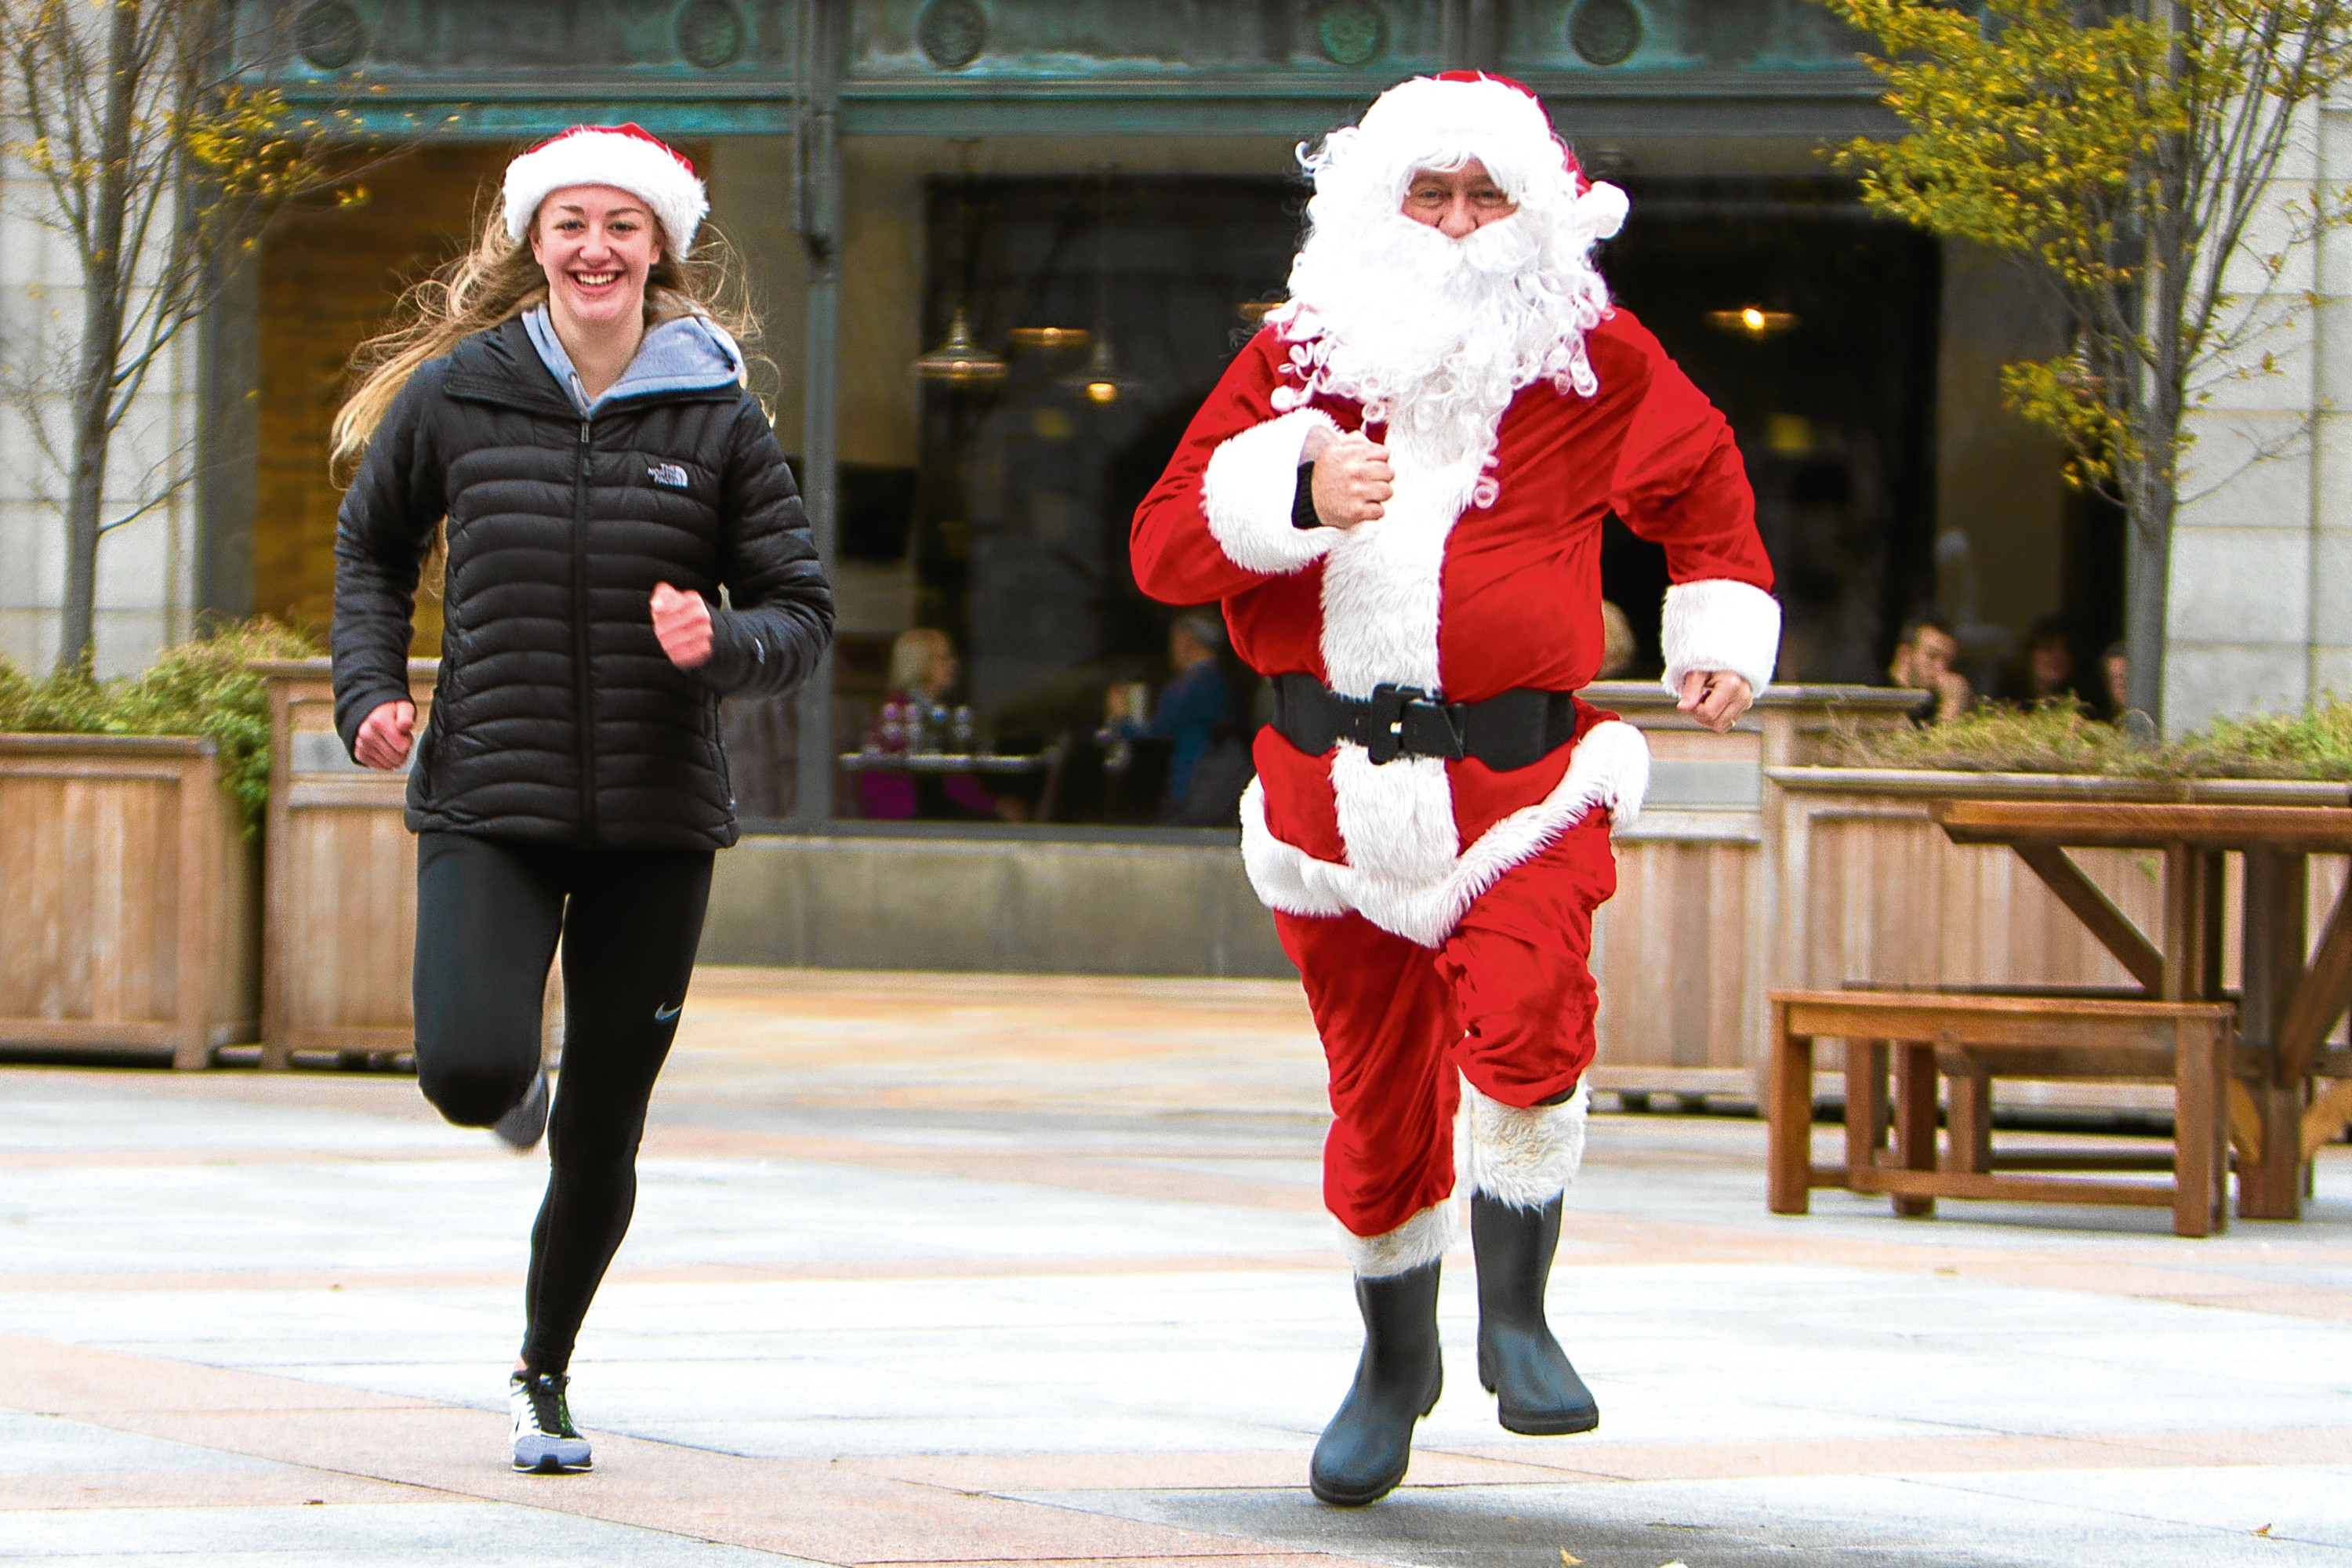 Amy gets ready for the Santa Dash later this month.